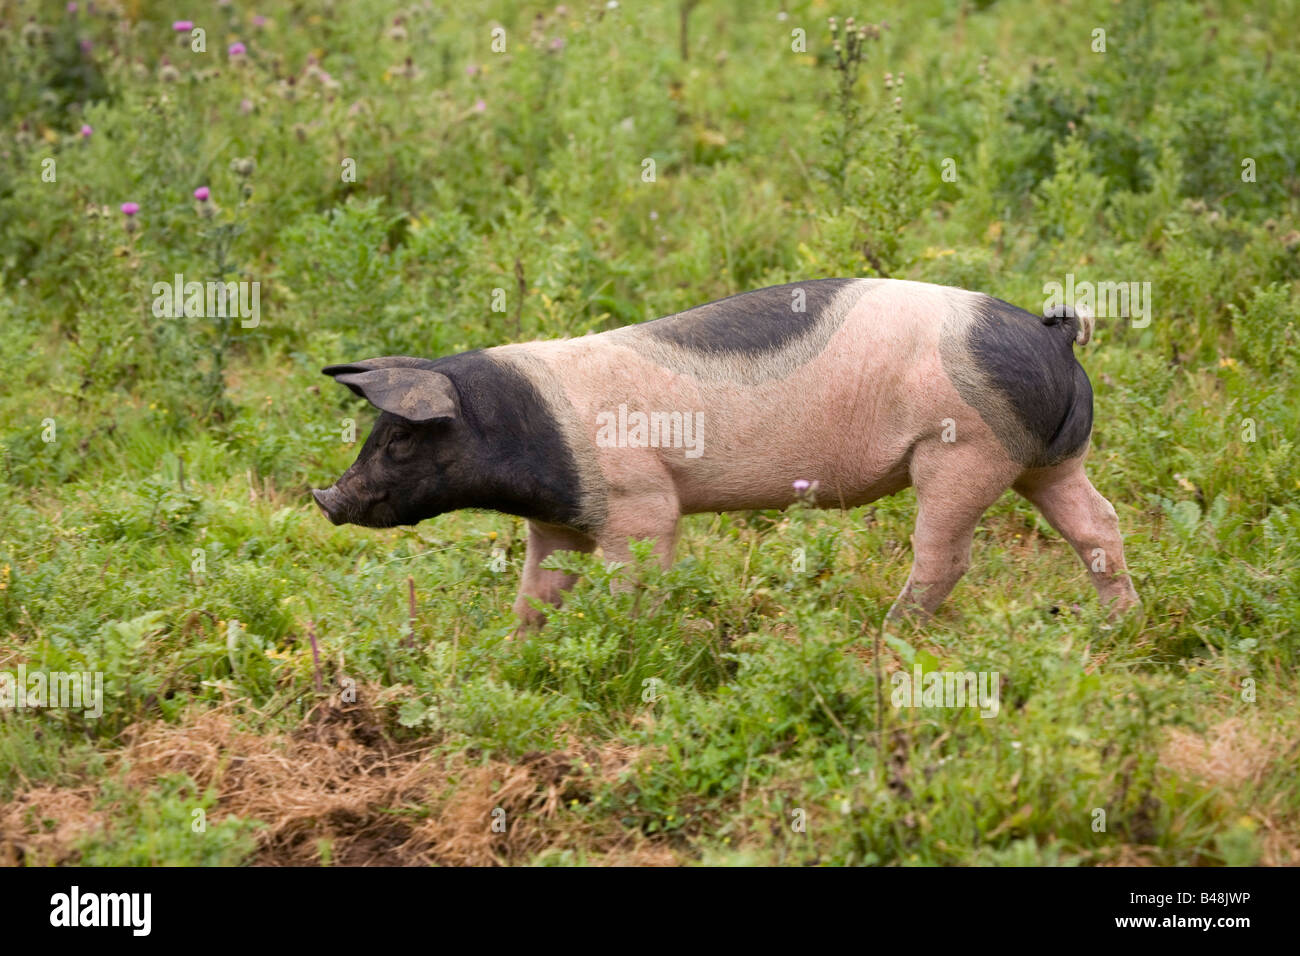 Forum on this topic: How to Transport Piglets (for the Smallhold , how-to-transport-piglets-for-the-smallhold/